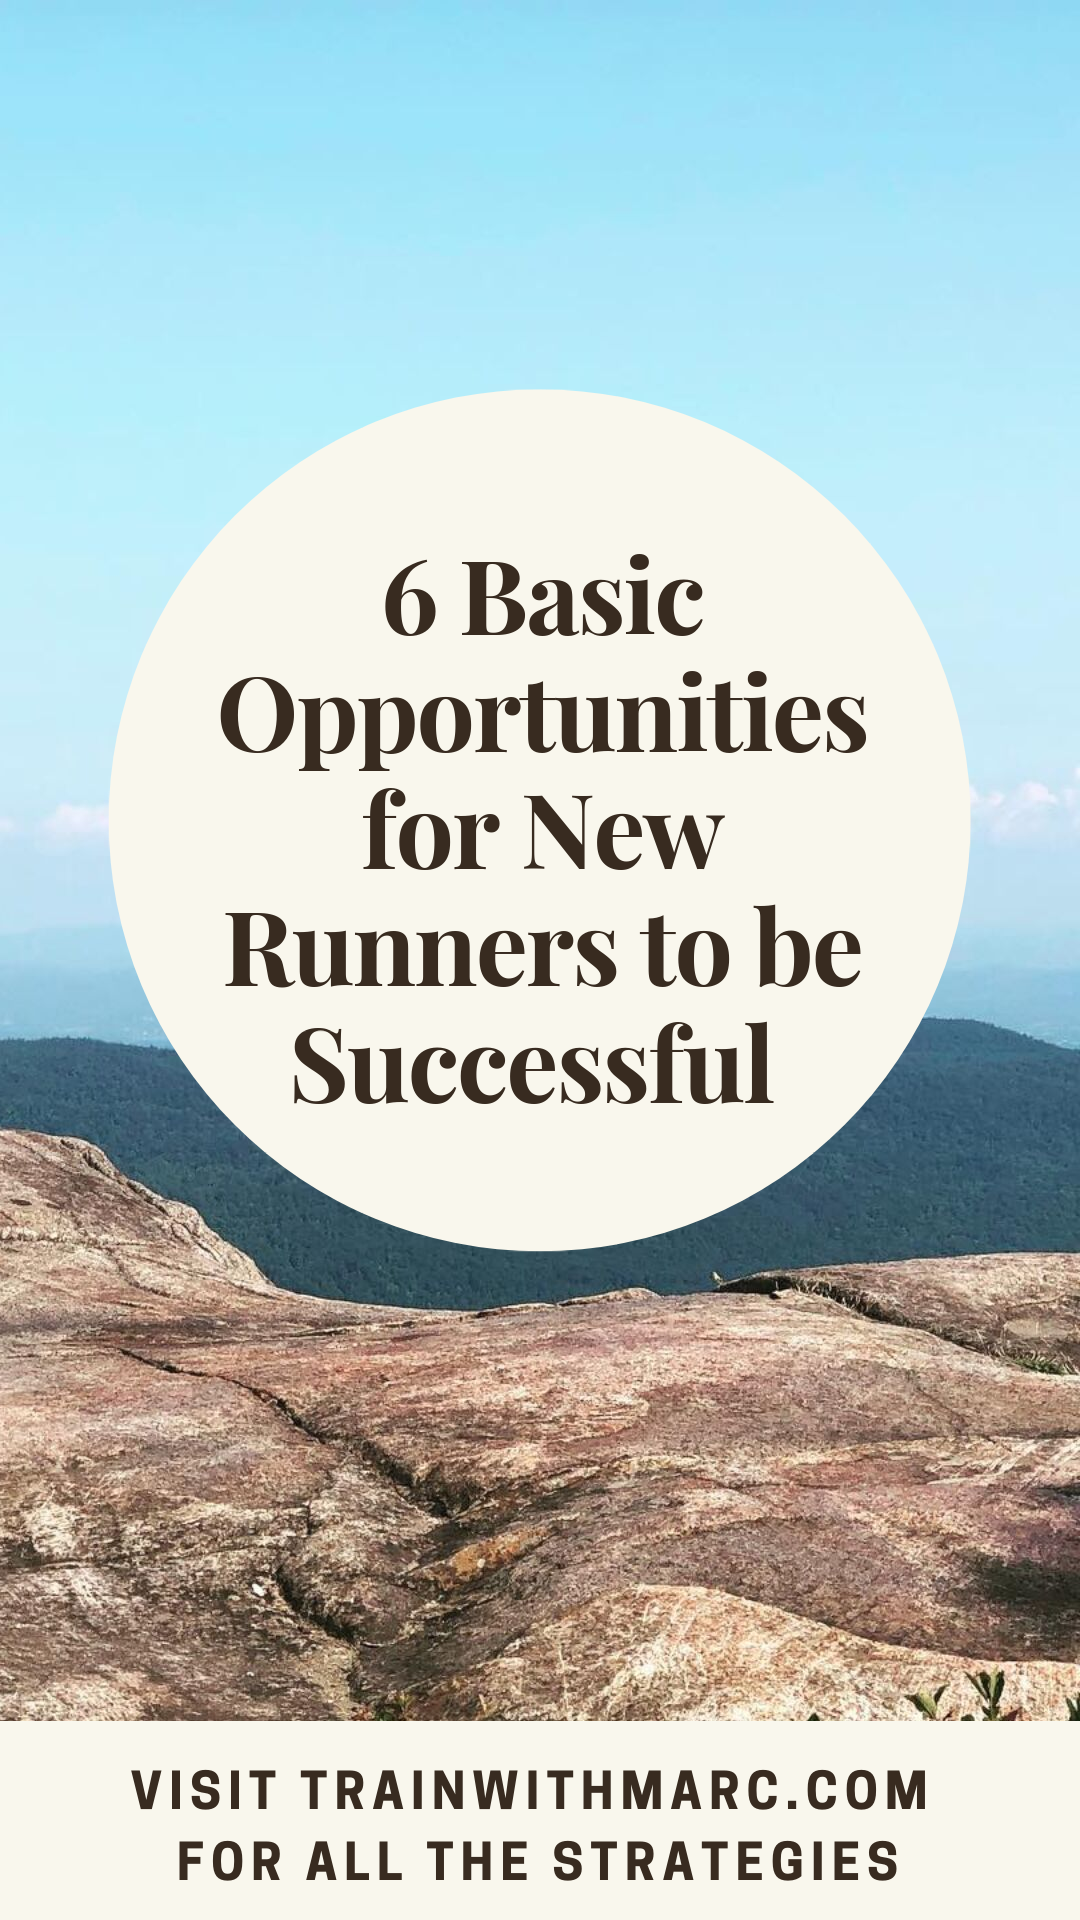 6 simple ideas for new runners to use so they can find running success